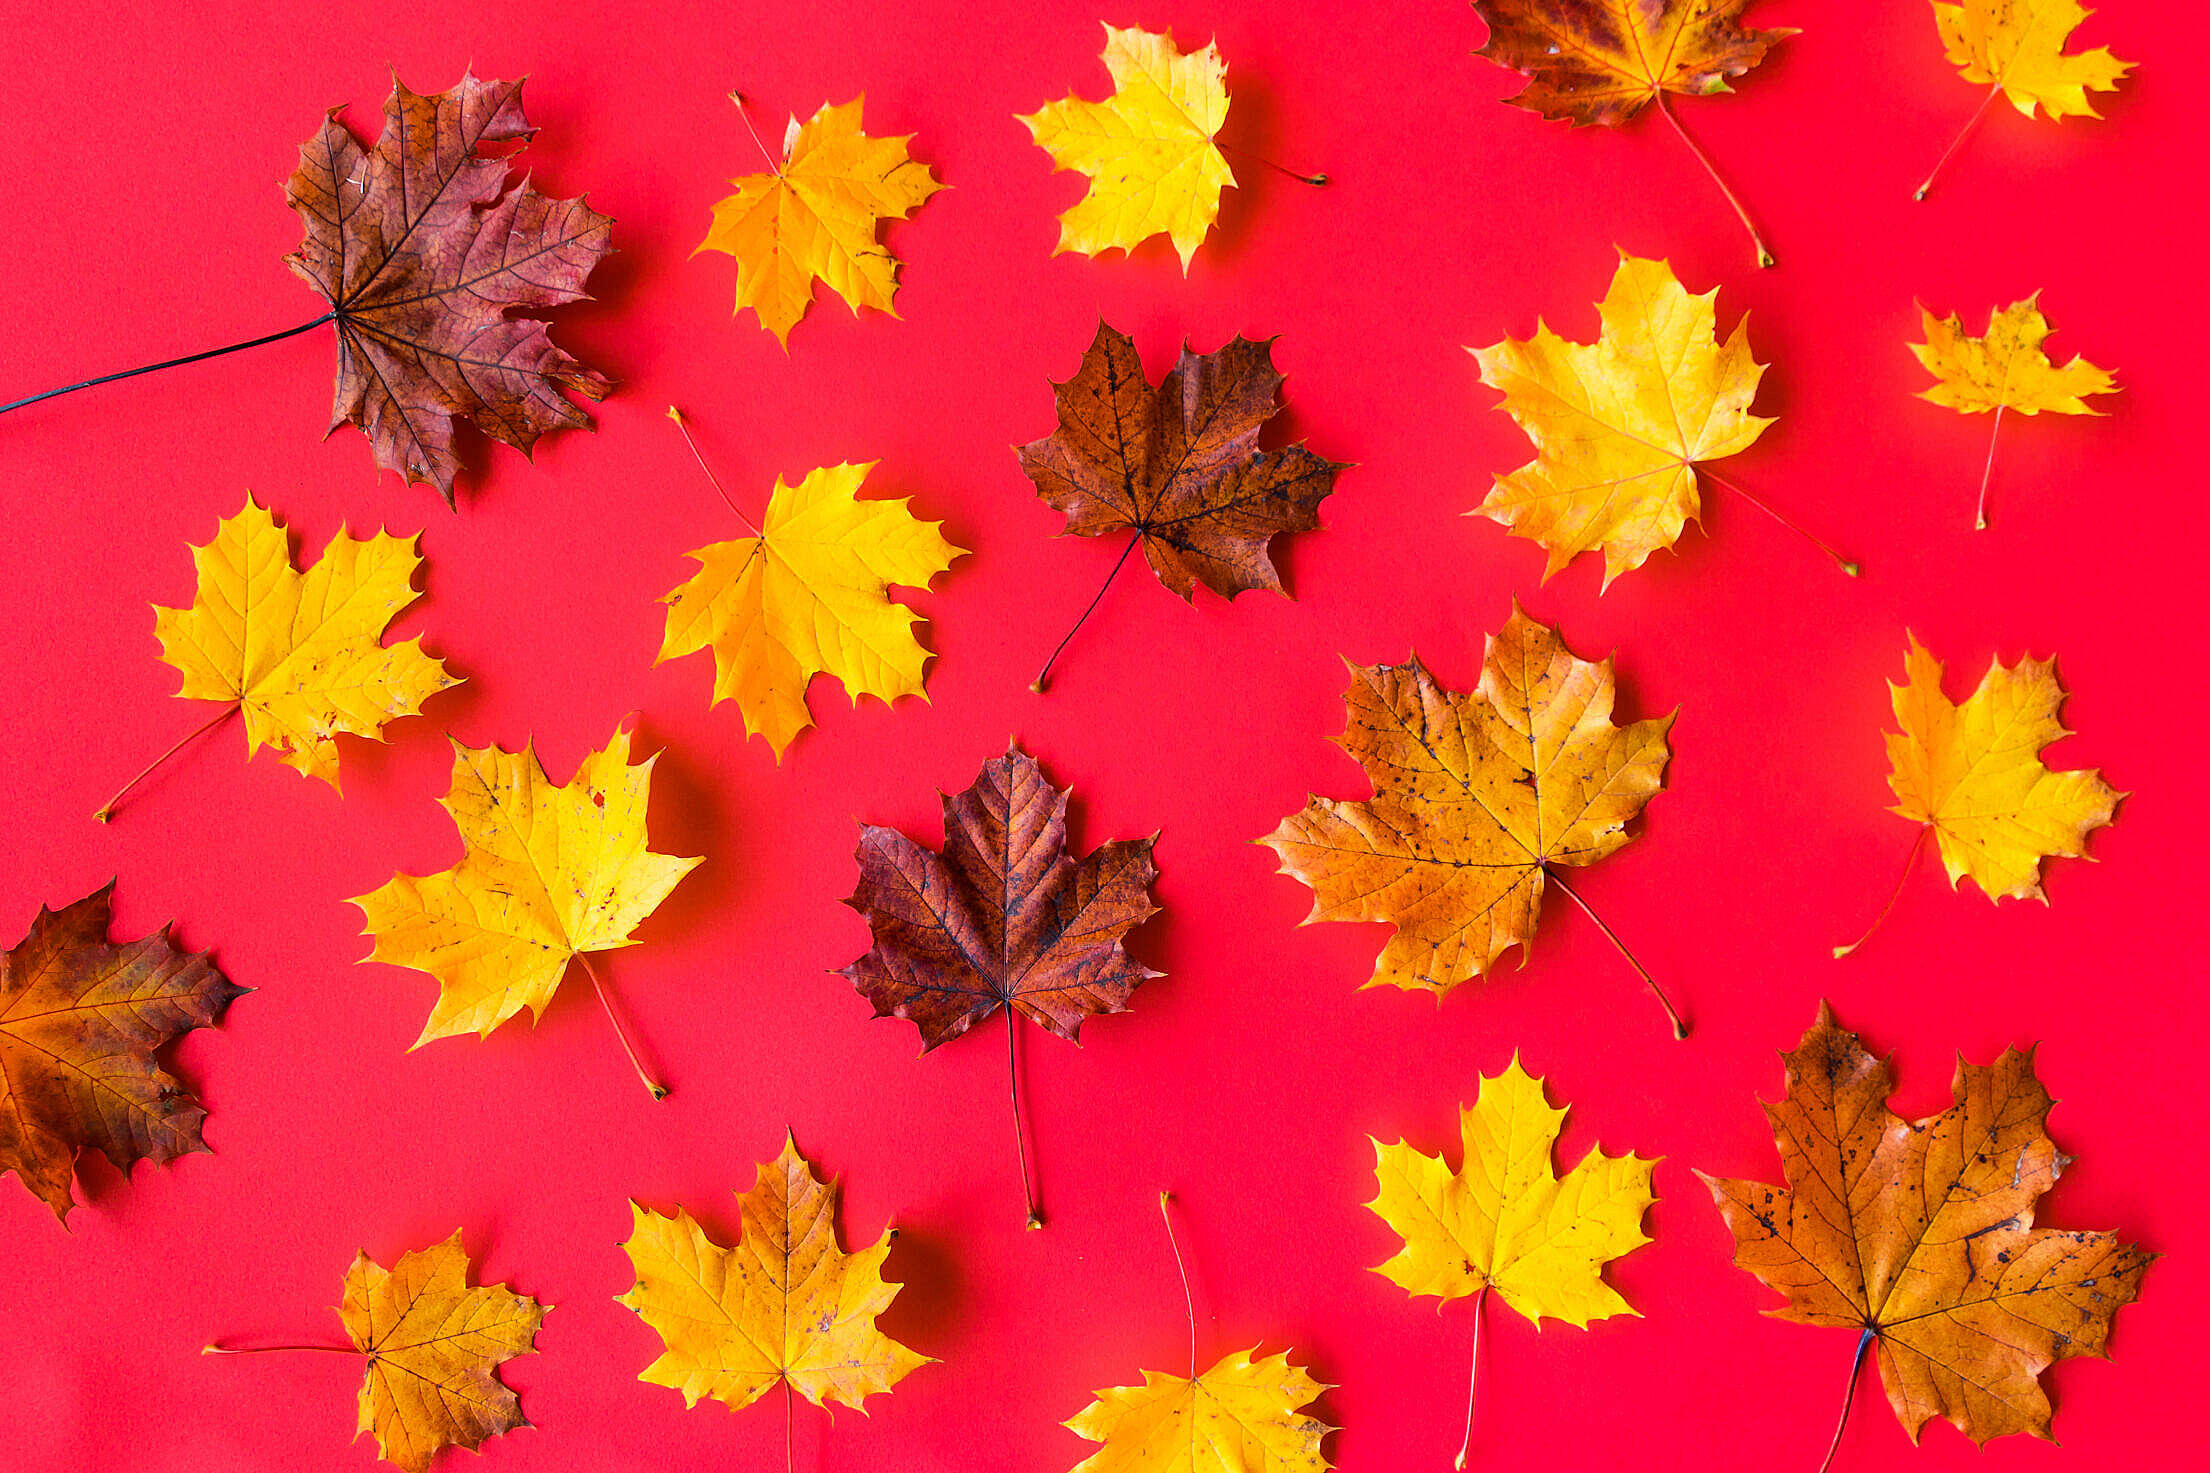 Autumn Leaves on Flat Red Background Free Stock Photo